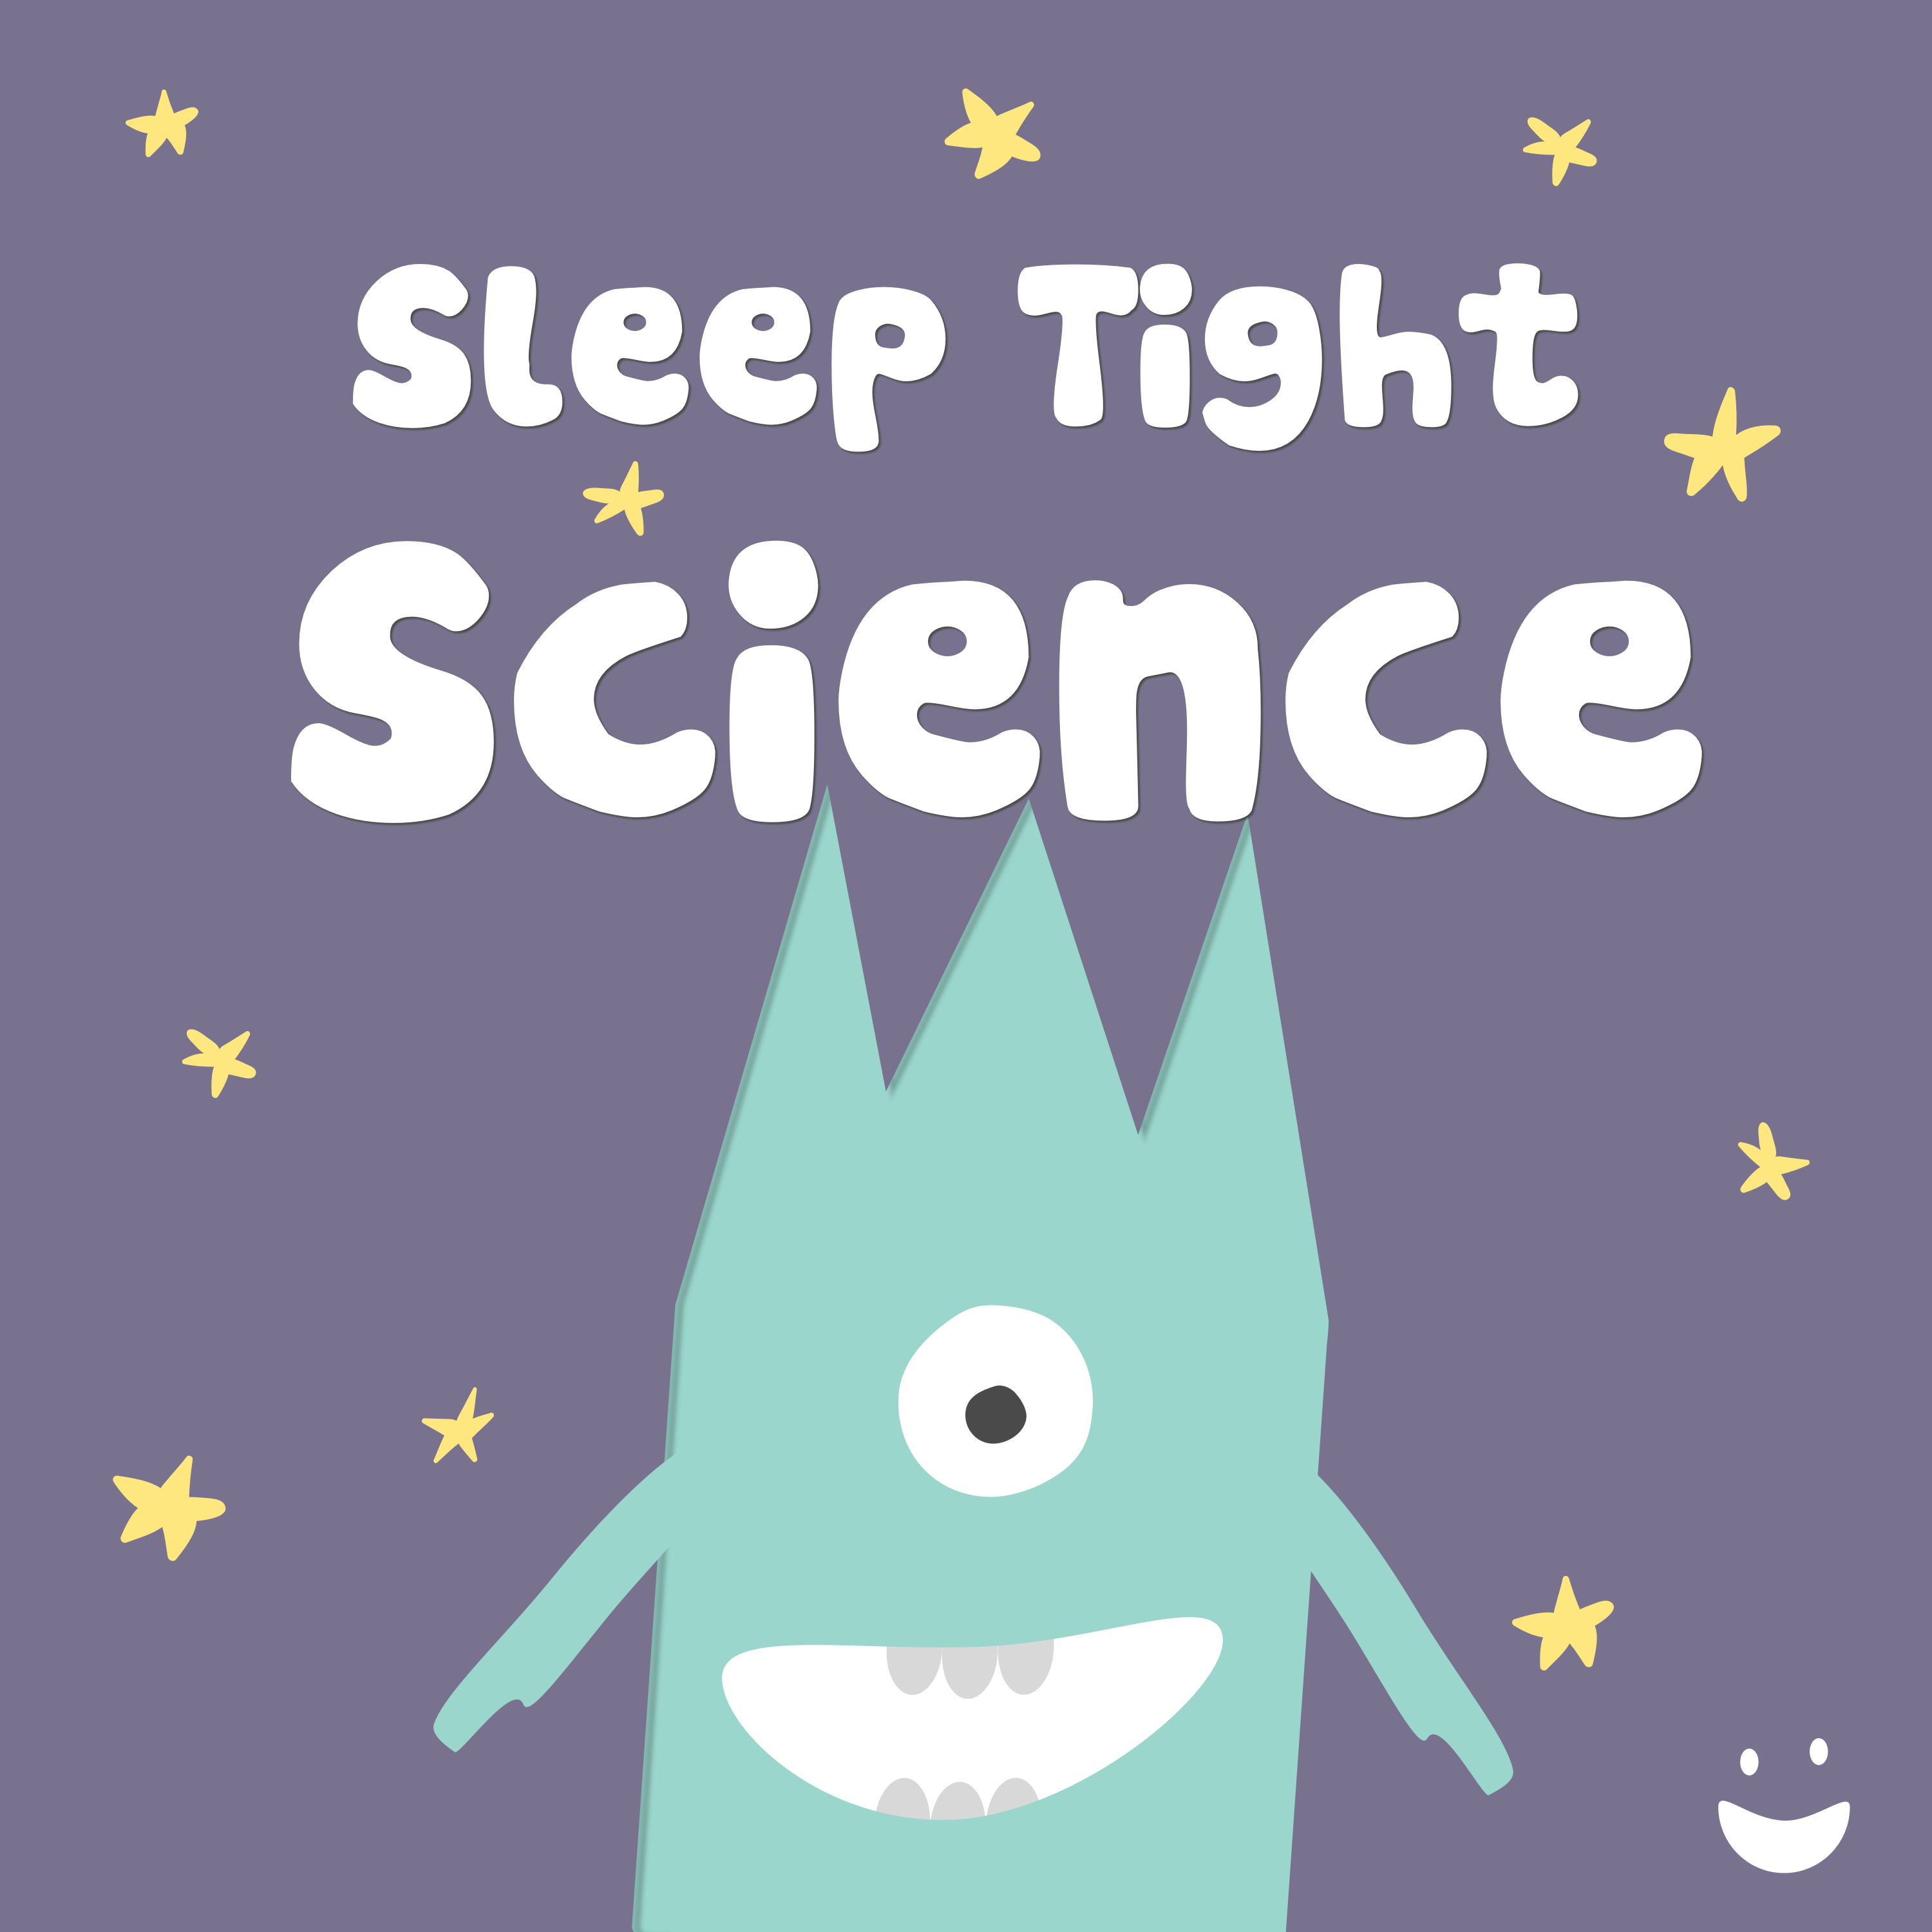 Artwork for Another season of Sleep Tight Science 🤖 is coming!